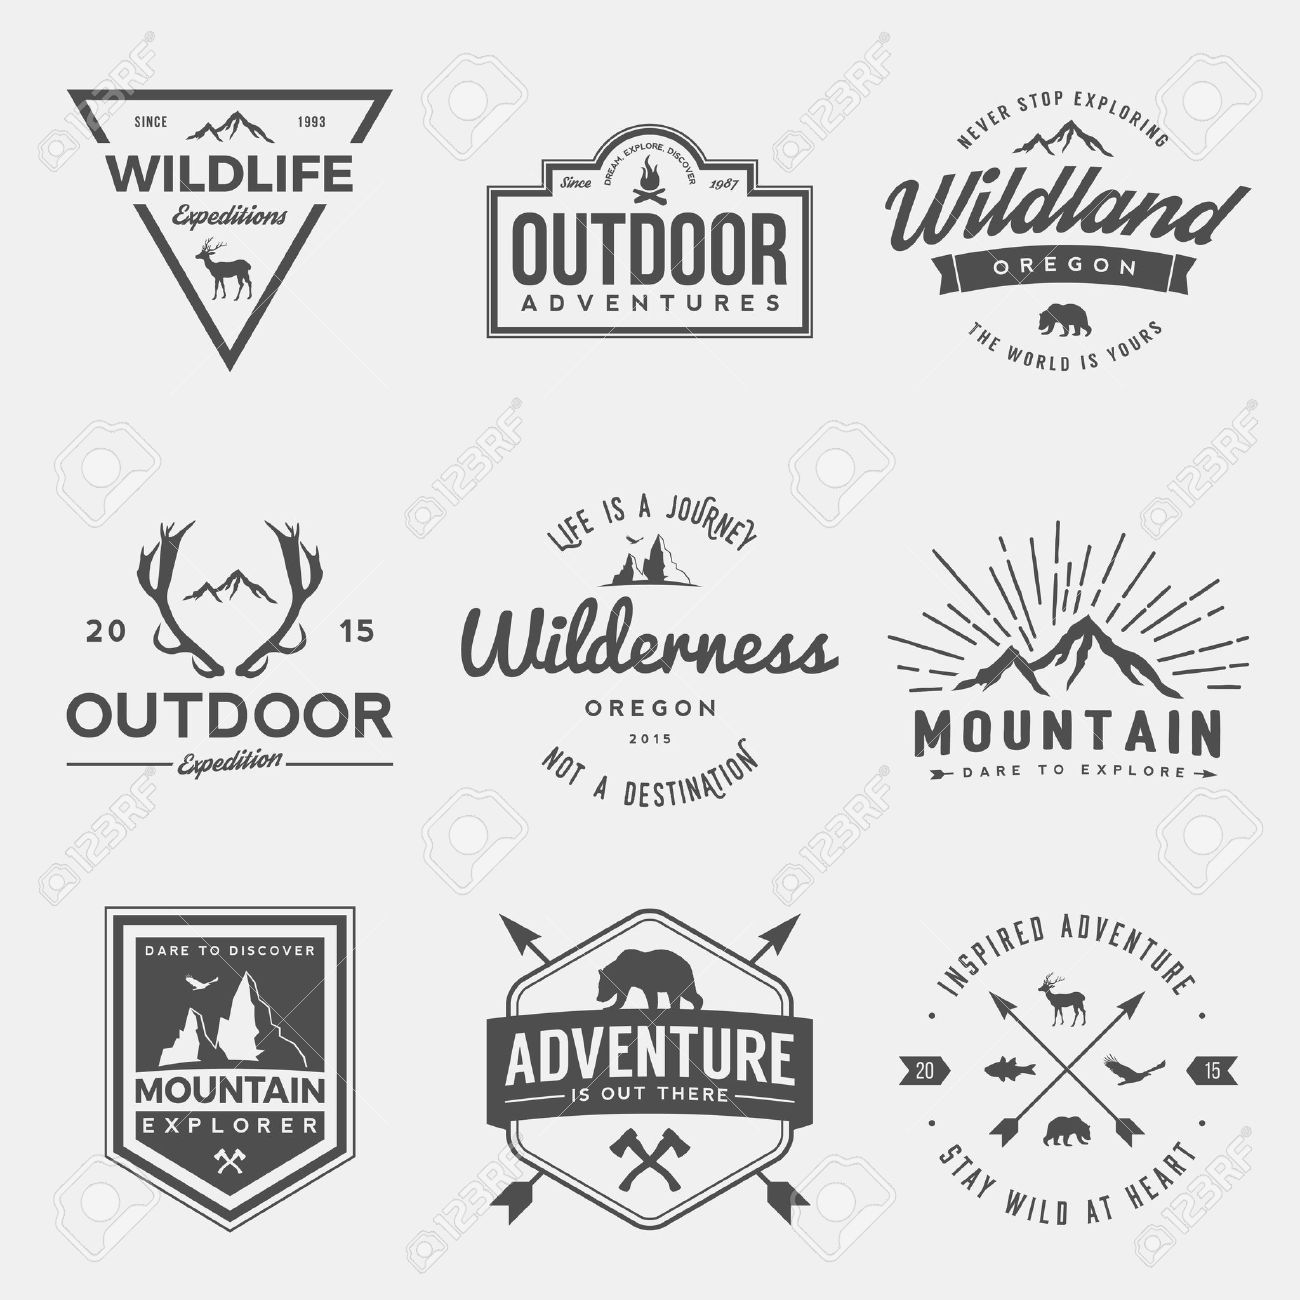 vector set of wilderness and nature exploration vintage logos, emblems, silhouettes and design elements - 42863868